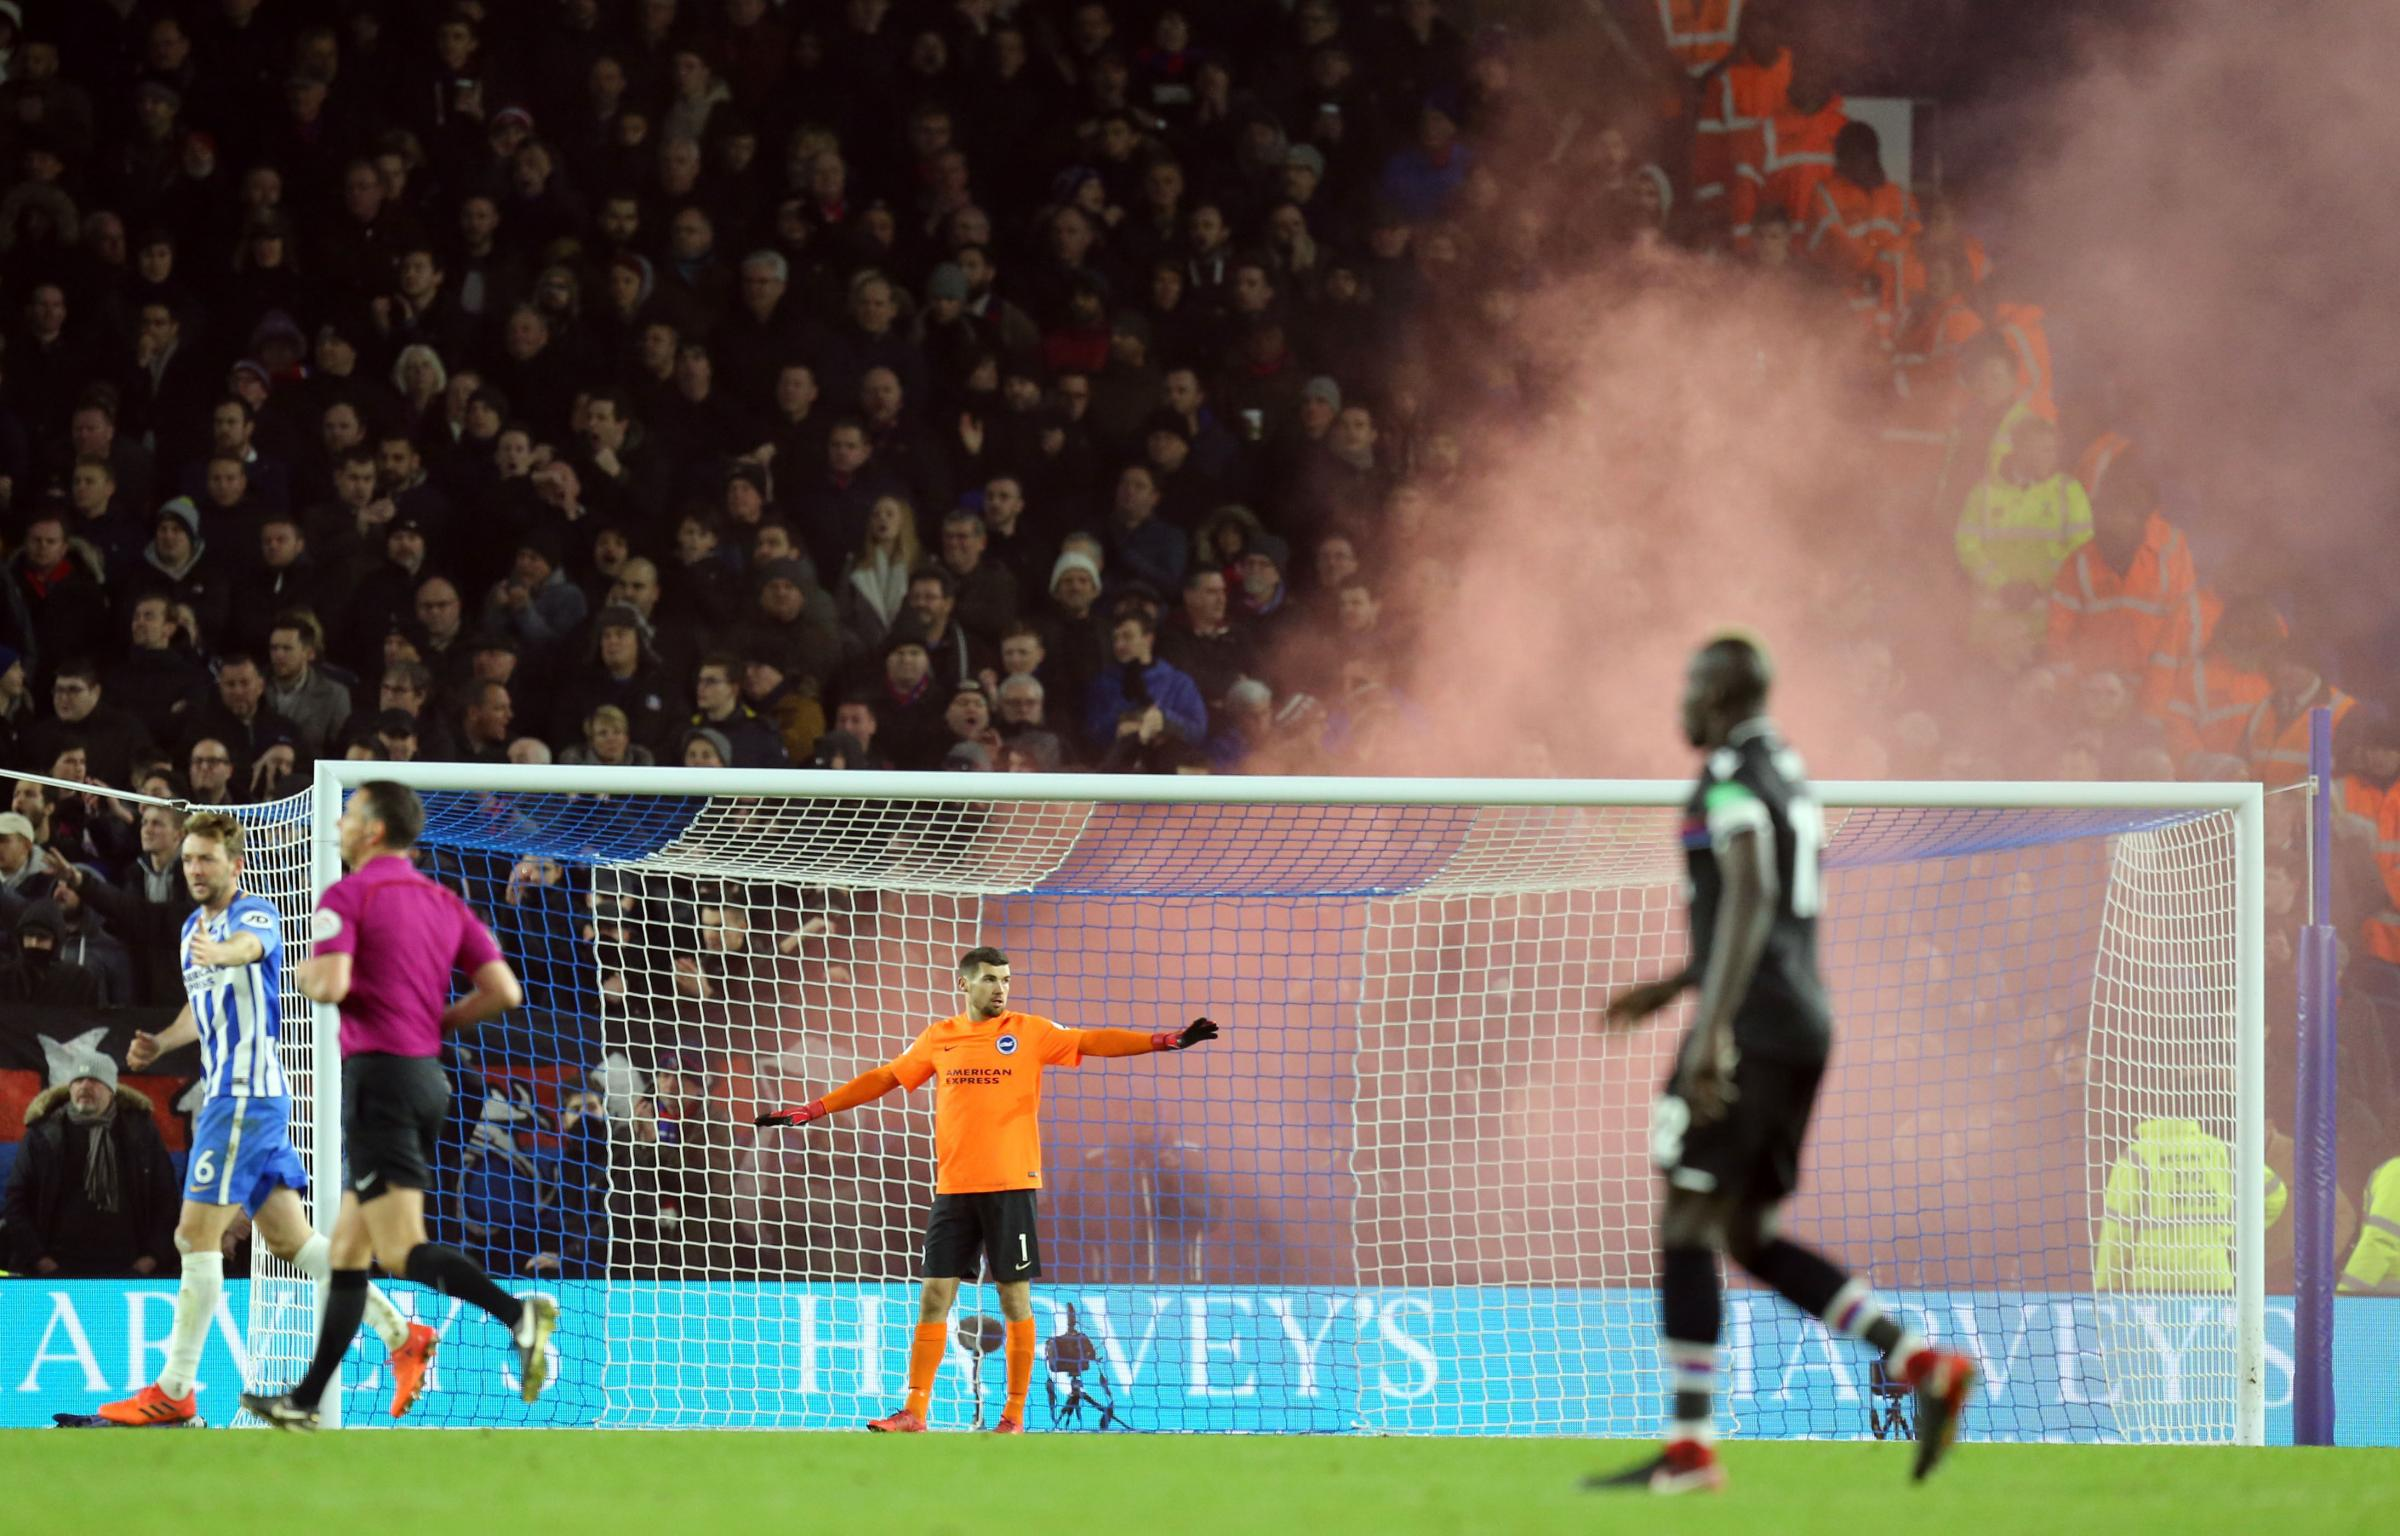 Crystal Palace fans let off smoke bombs in the stands during the Brighton game | Picture: PA